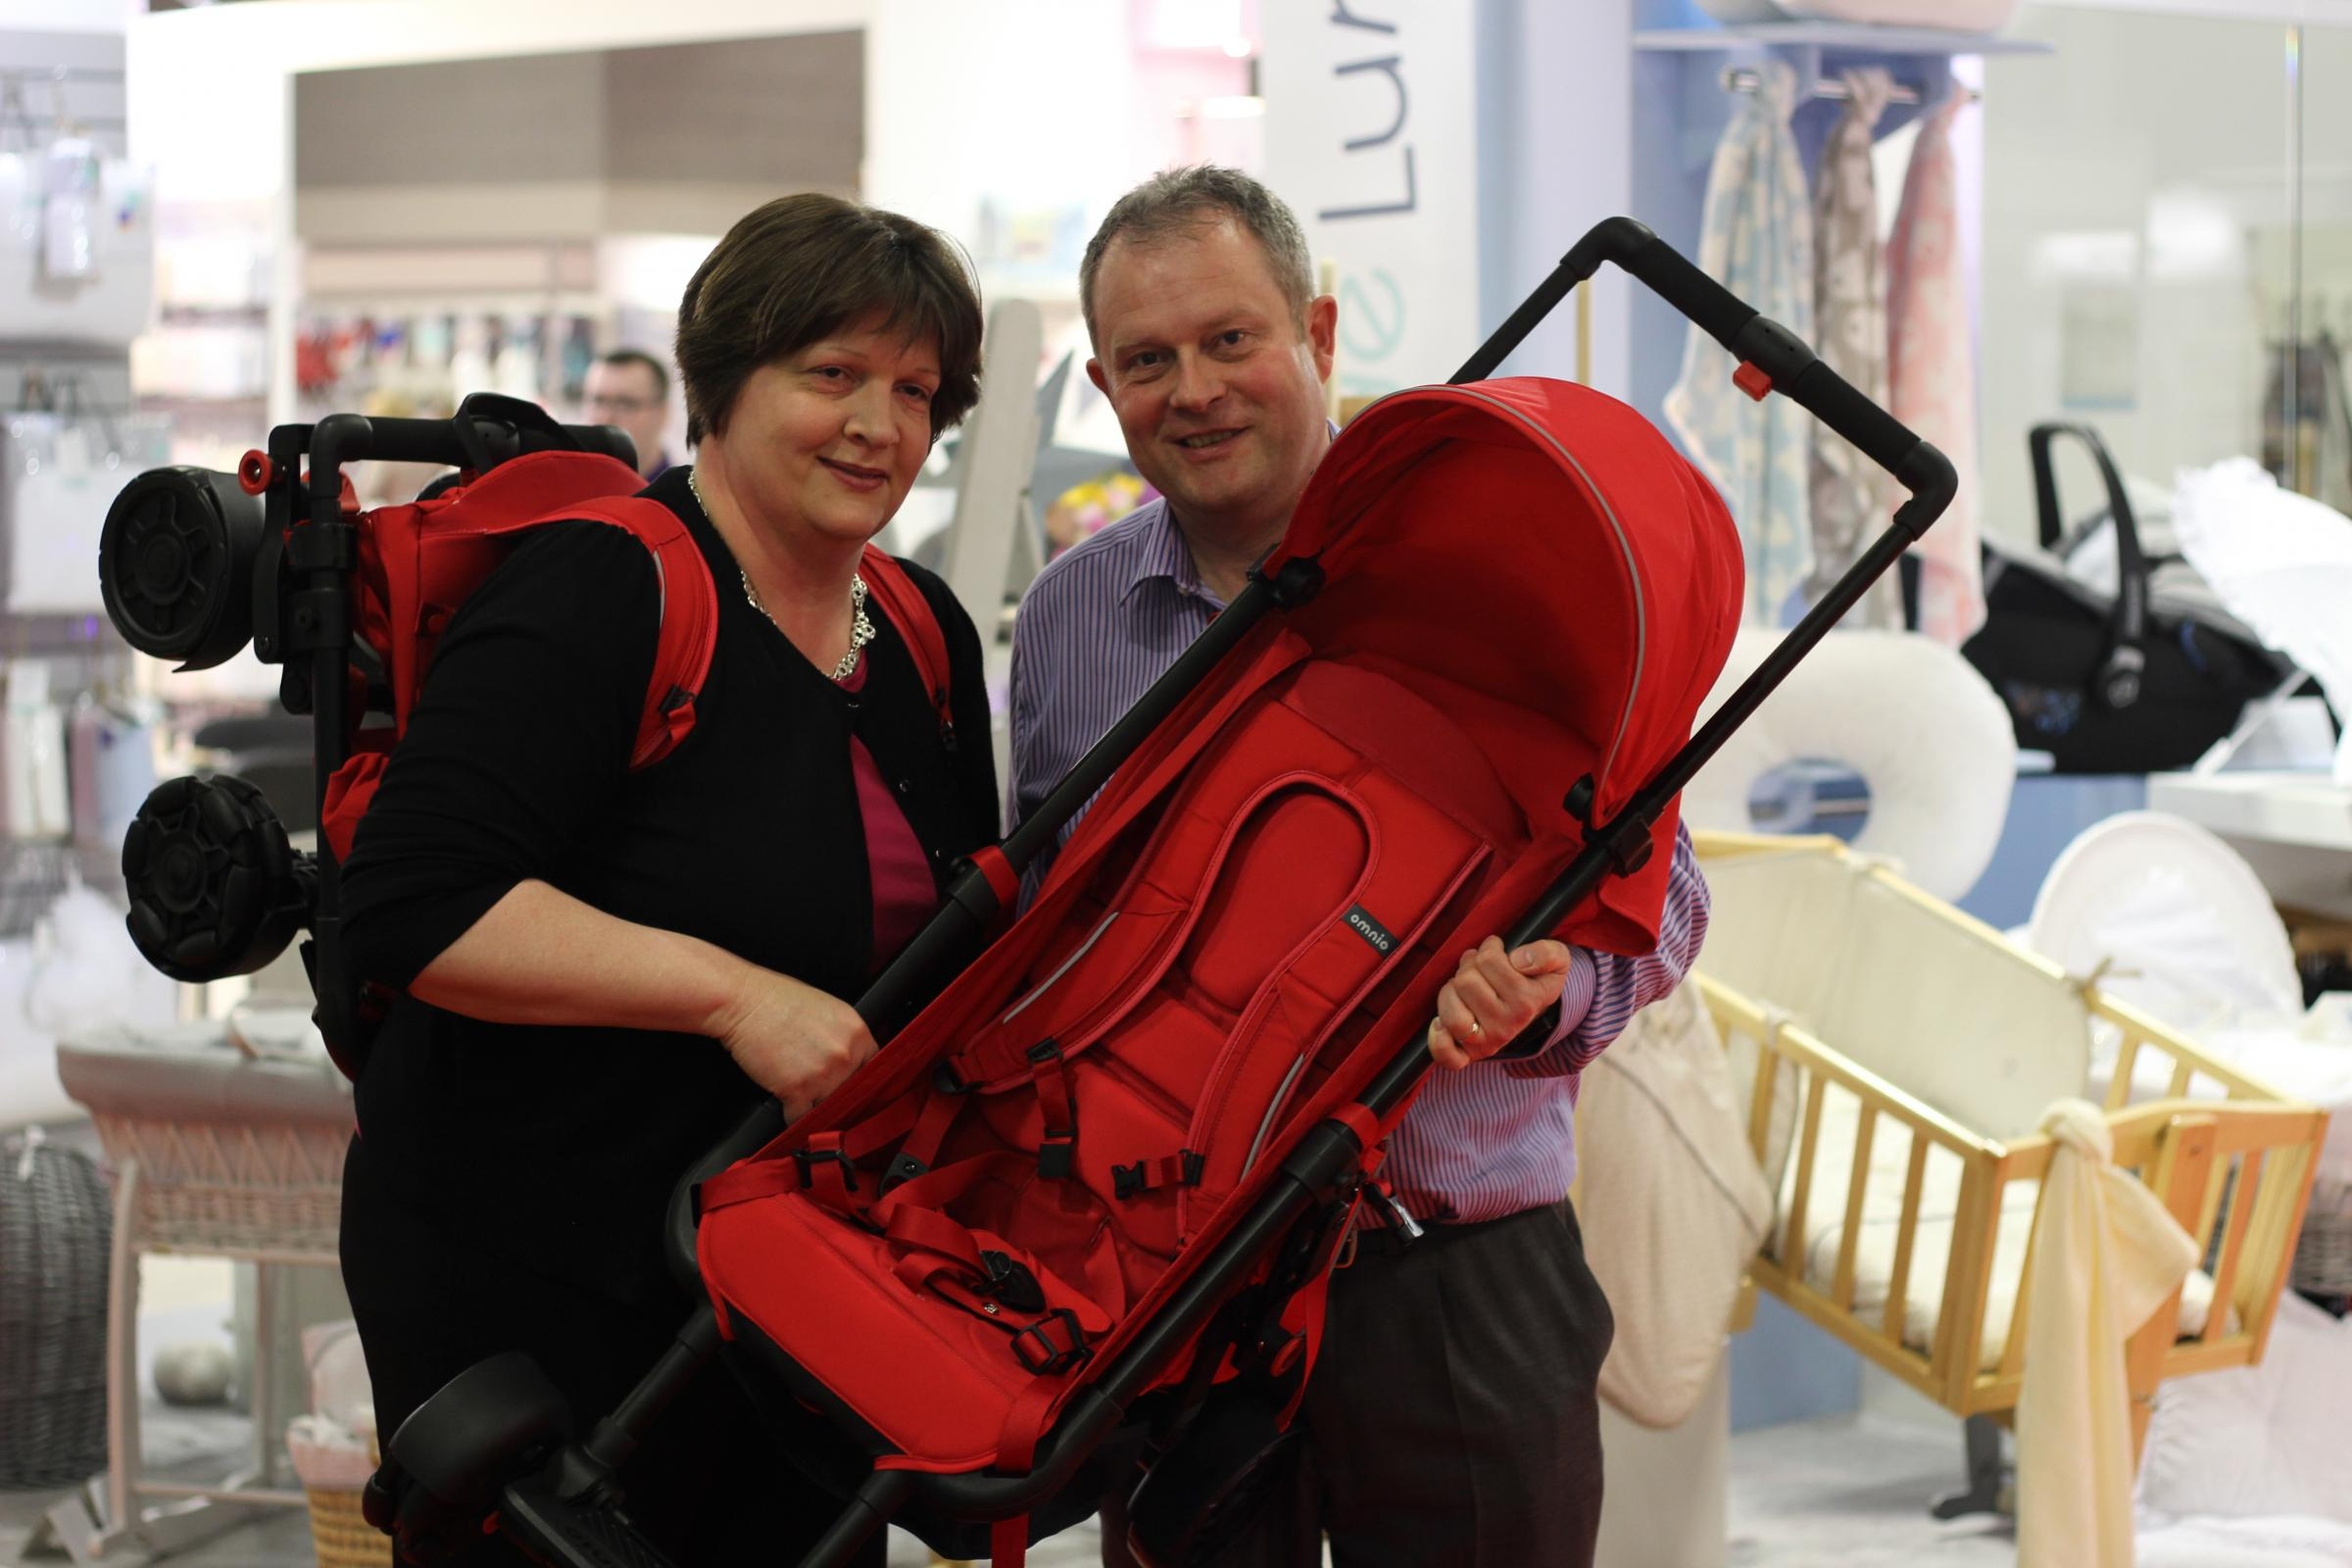 Markus and Samantha Warwick  with Omnio, the wearable stroller